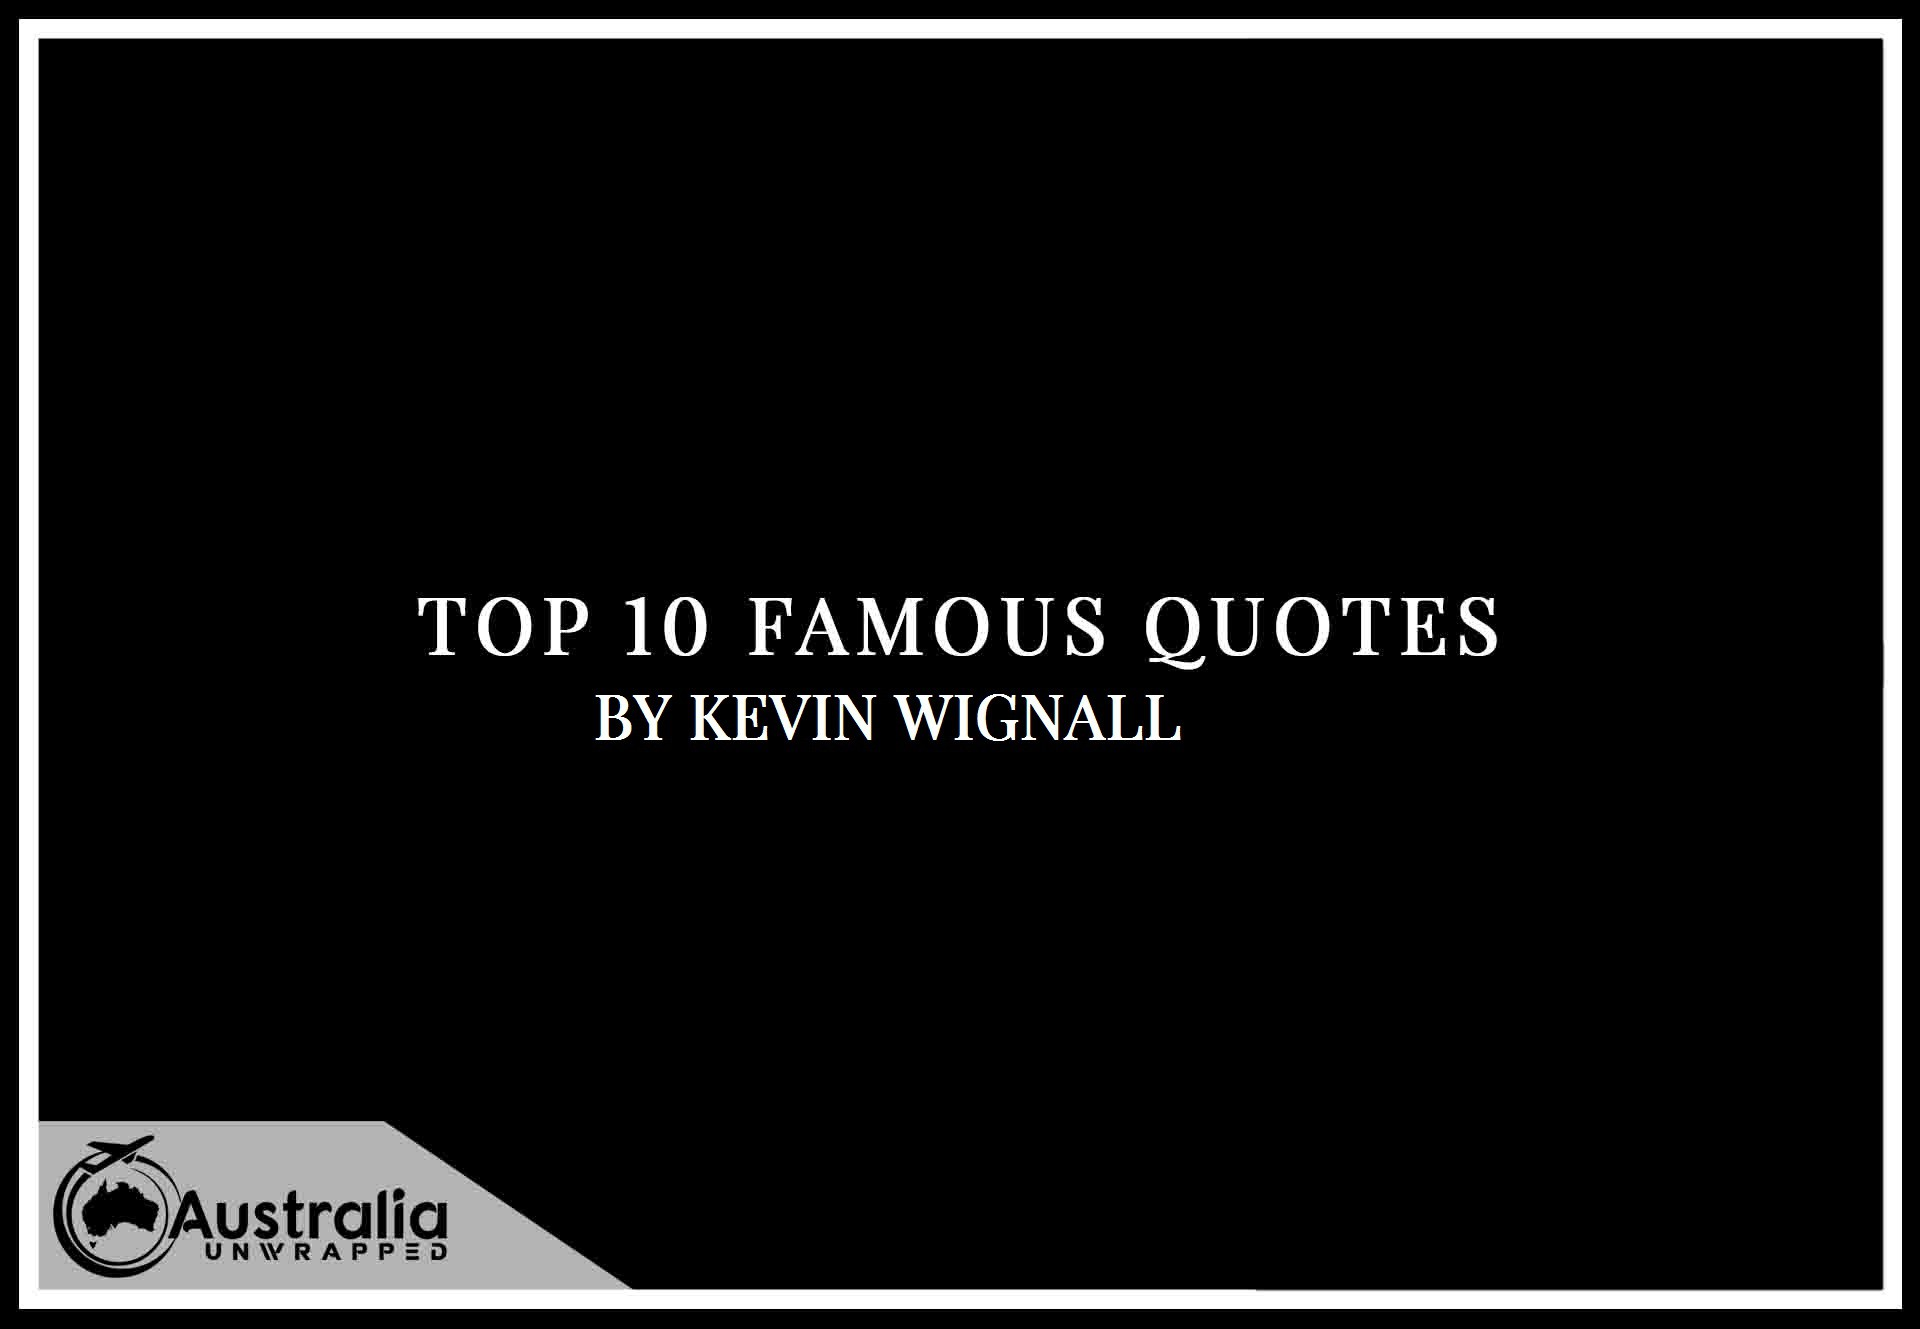 Kevin Wignall's Top 10 Popular and Famous Quotes